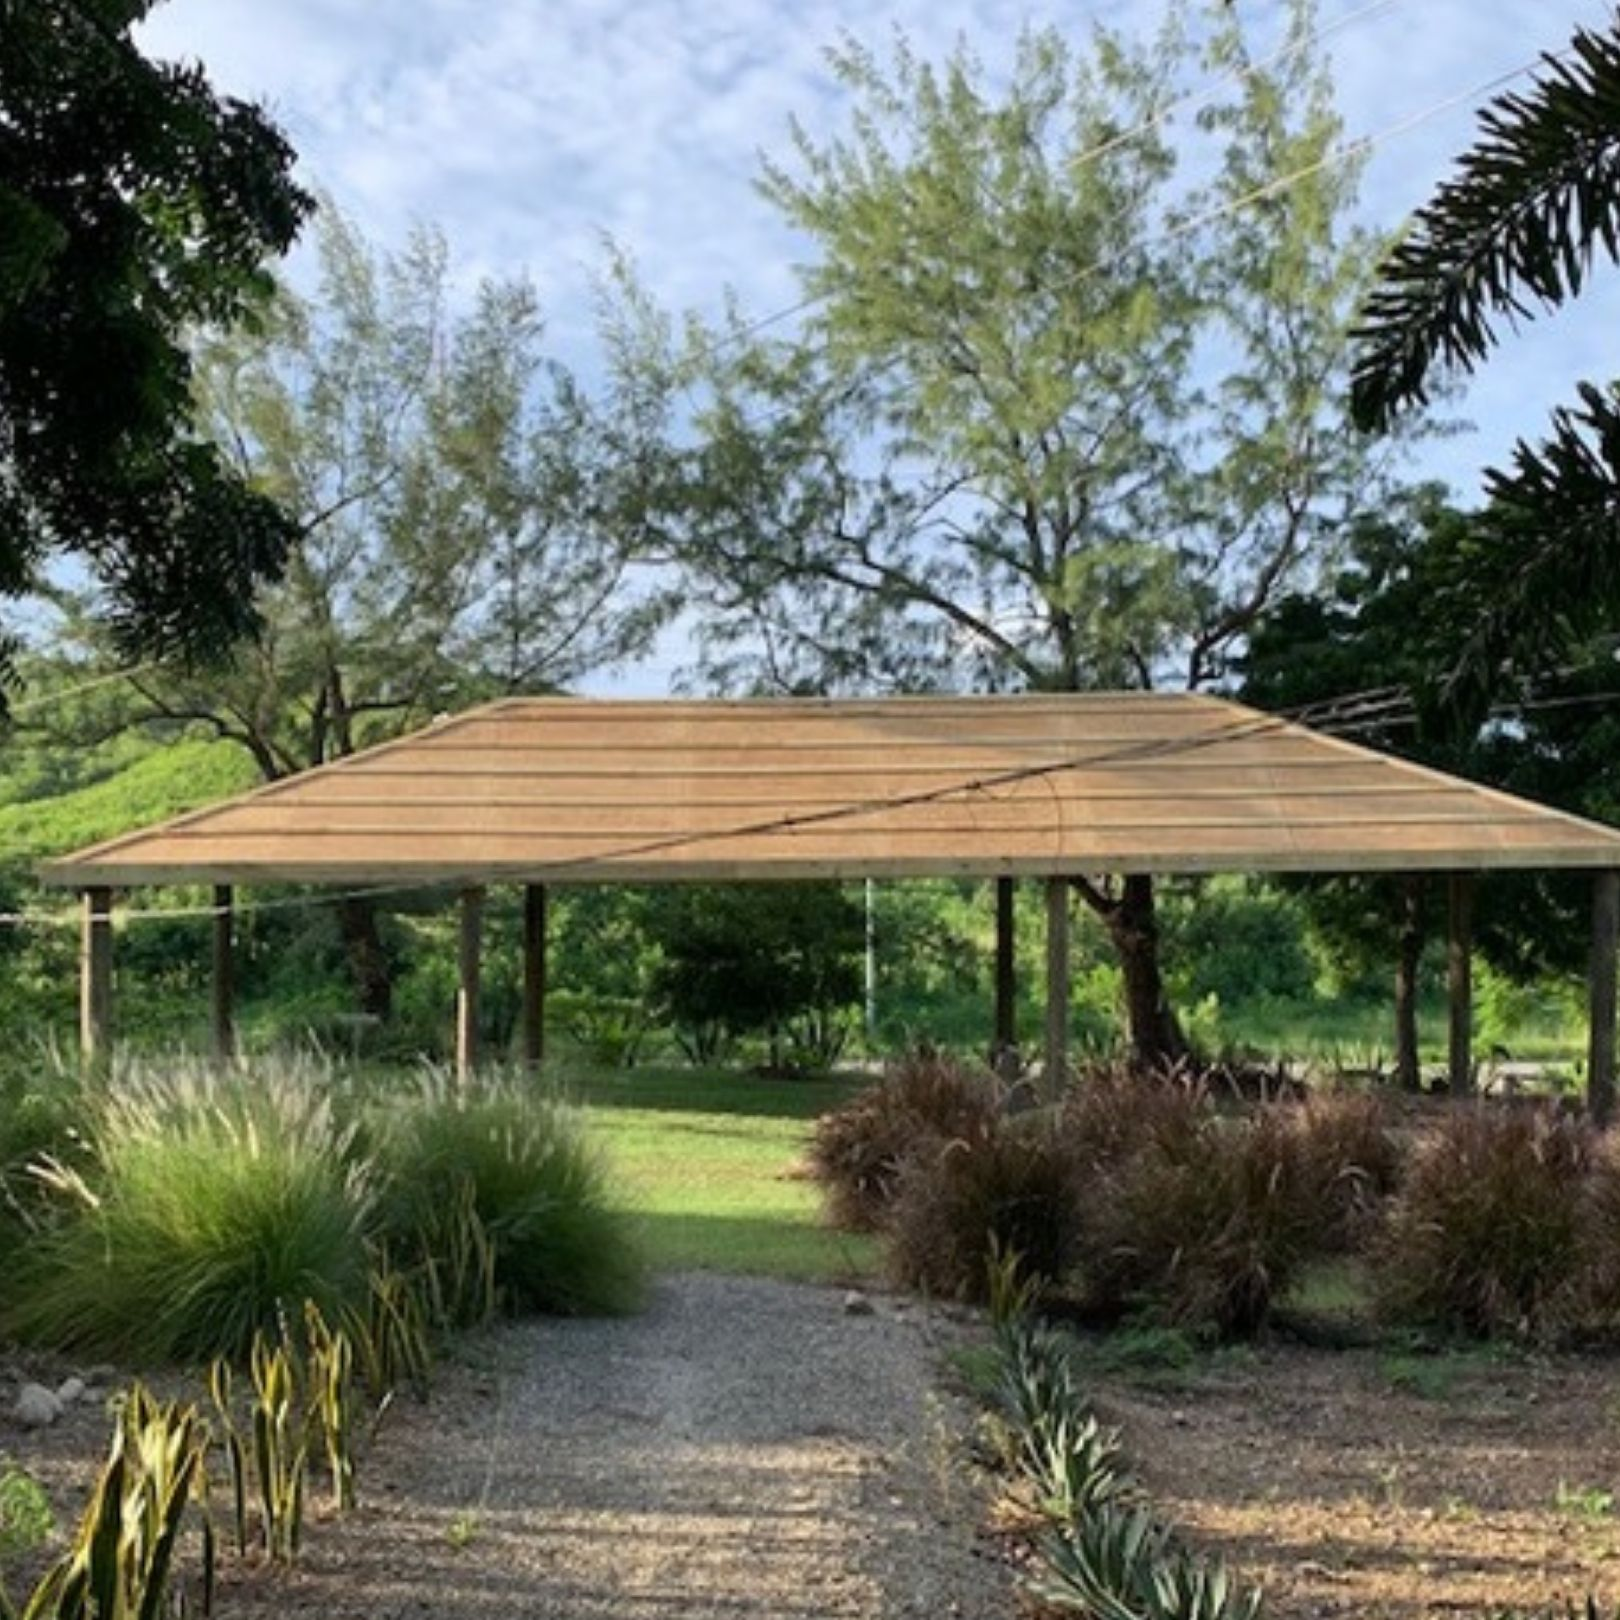 Accessible outdoor space at Agave Gardens